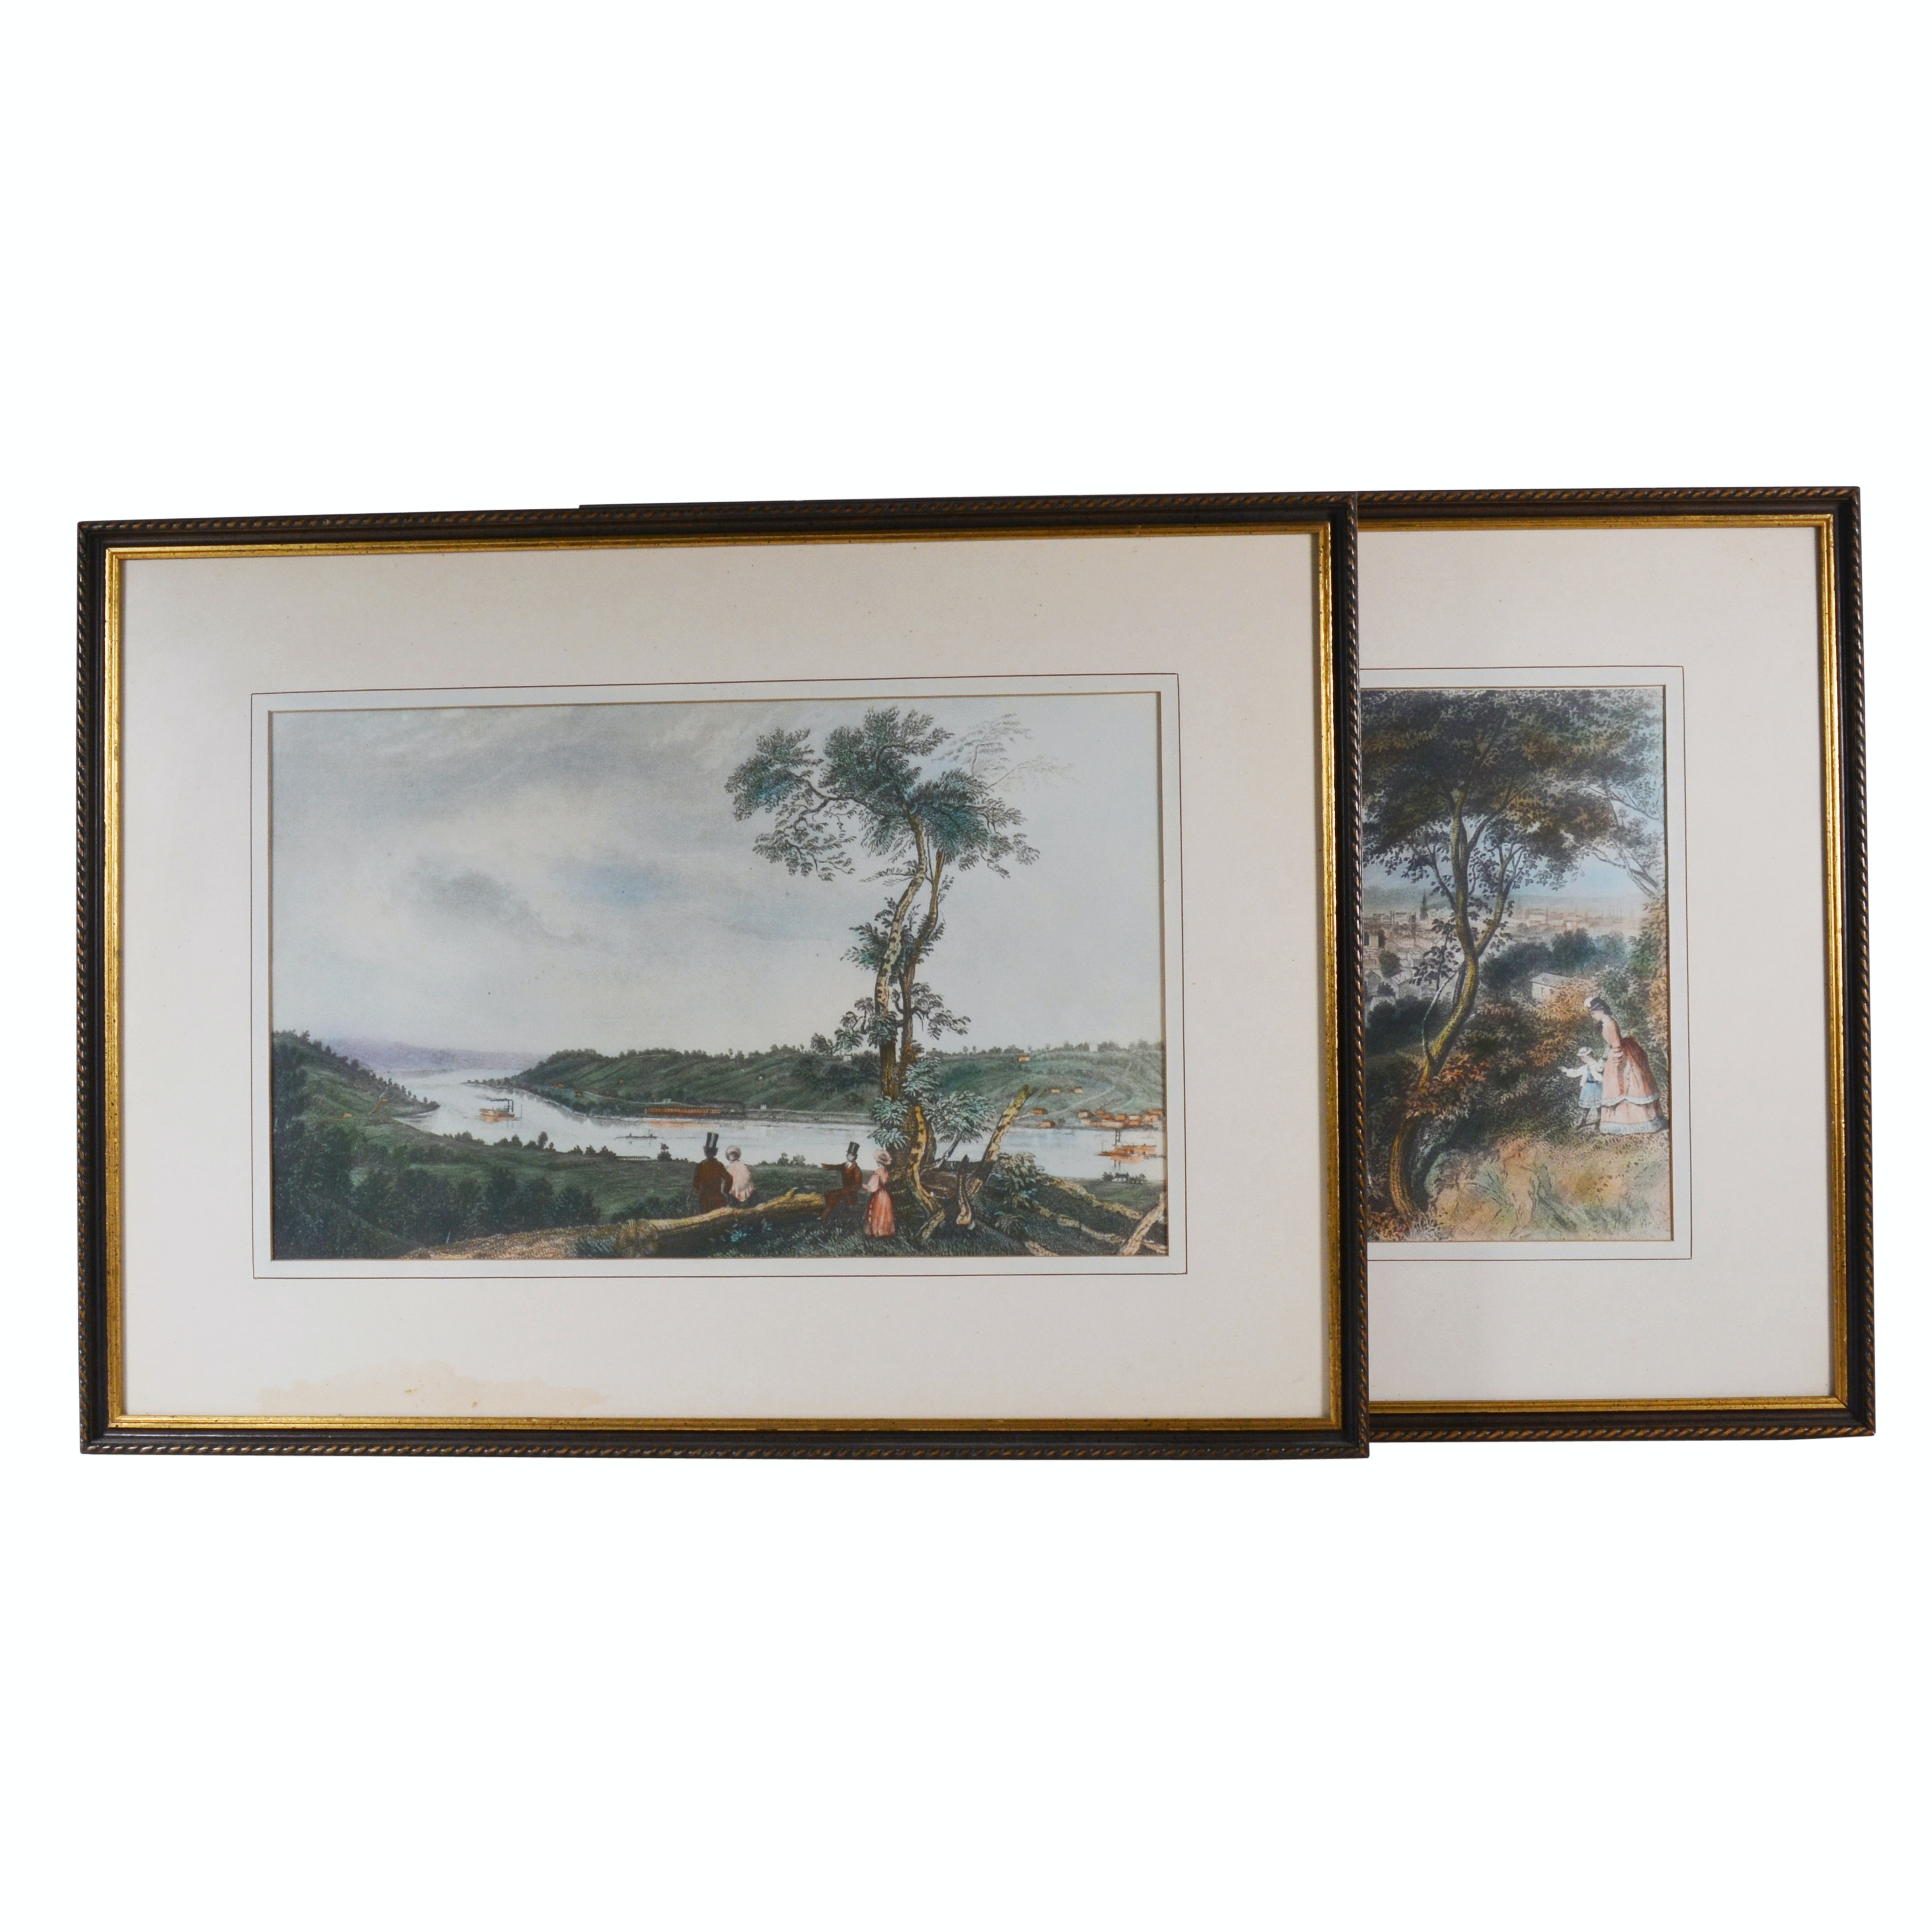 Pair of Colored Etchings of View Over Ohio River